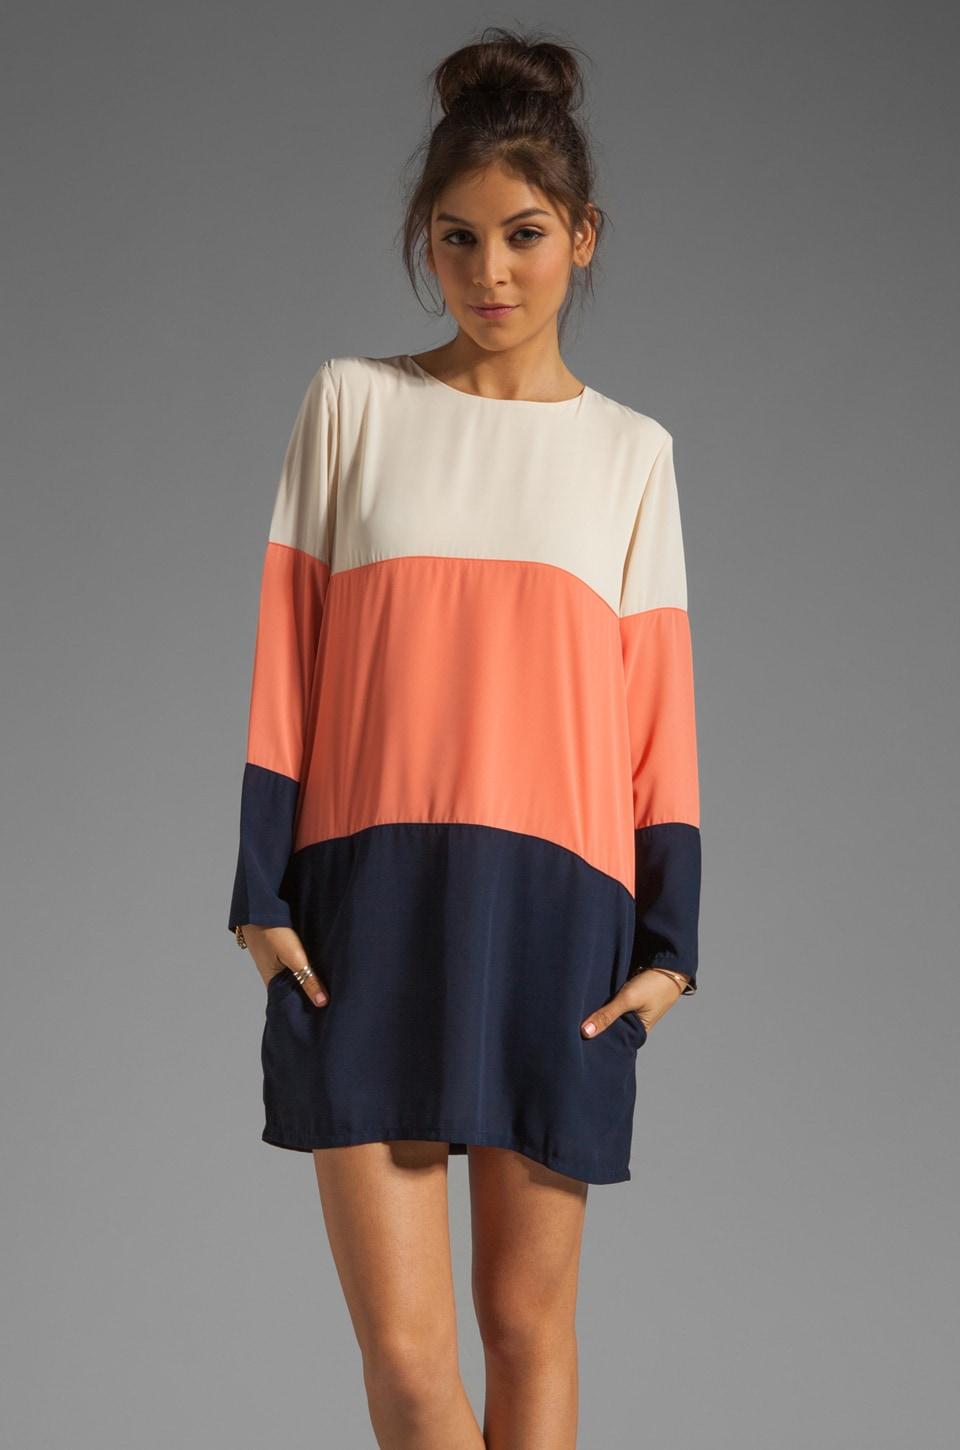 Lovers + Friends x BECAUSE IM ADDICTED Chic Dress in Colorblocked